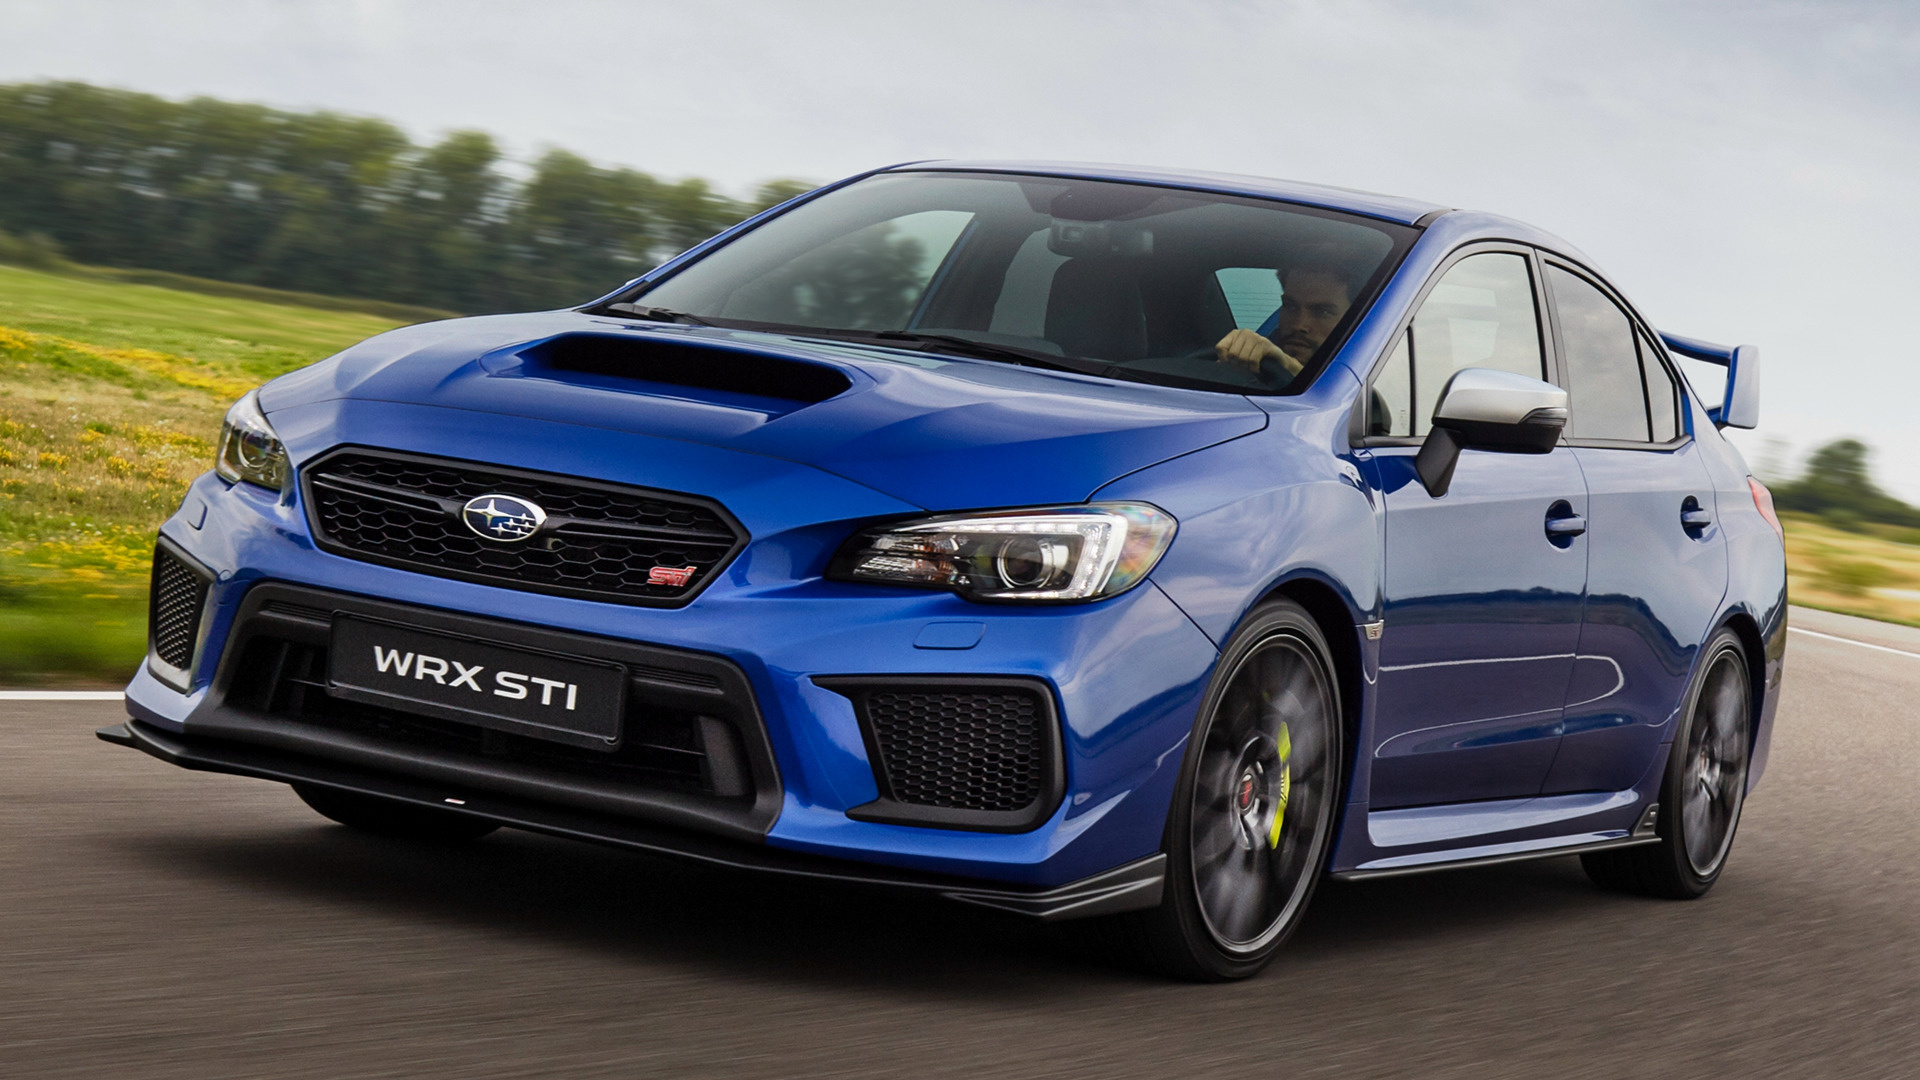 subaru wrx sti 2017 wallpapers and hd images car pixel. Black Bedroom Furniture Sets. Home Design Ideas